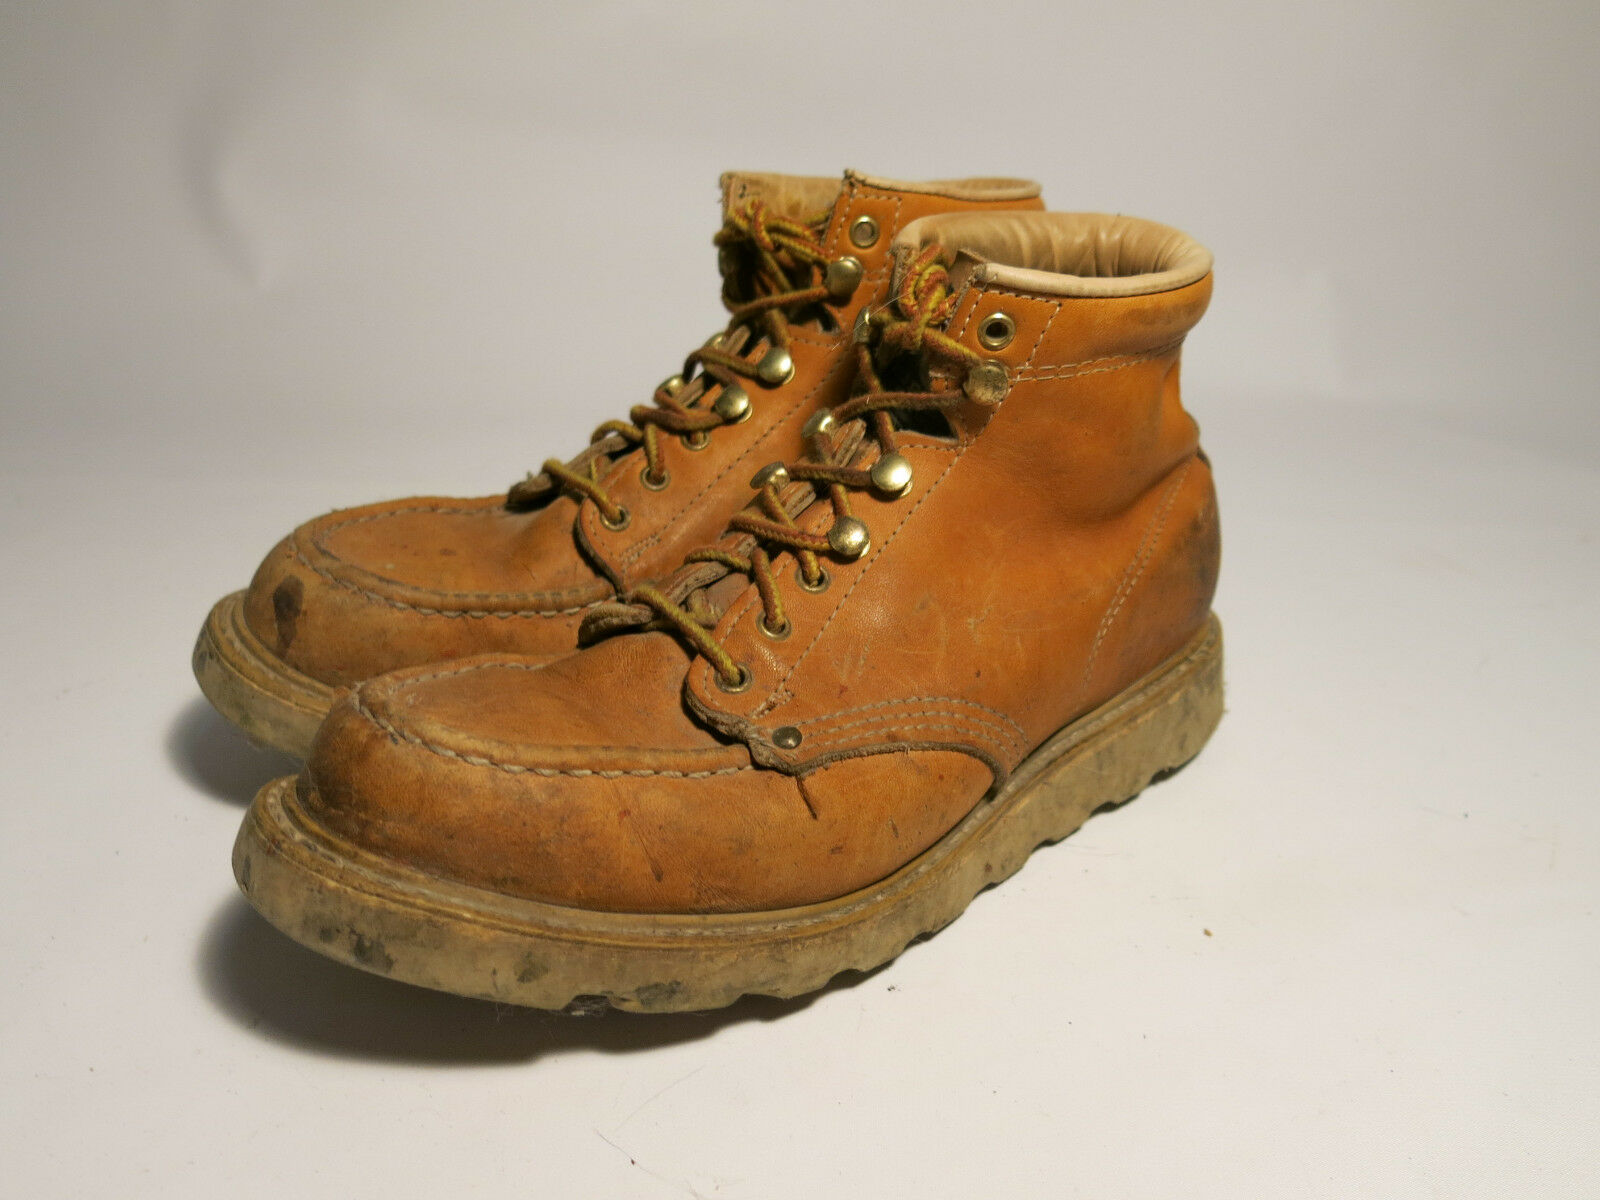 Men's 7 D VTG Carolina Made USA Tan Leather Wedge Sole Moc Toe Work Boots